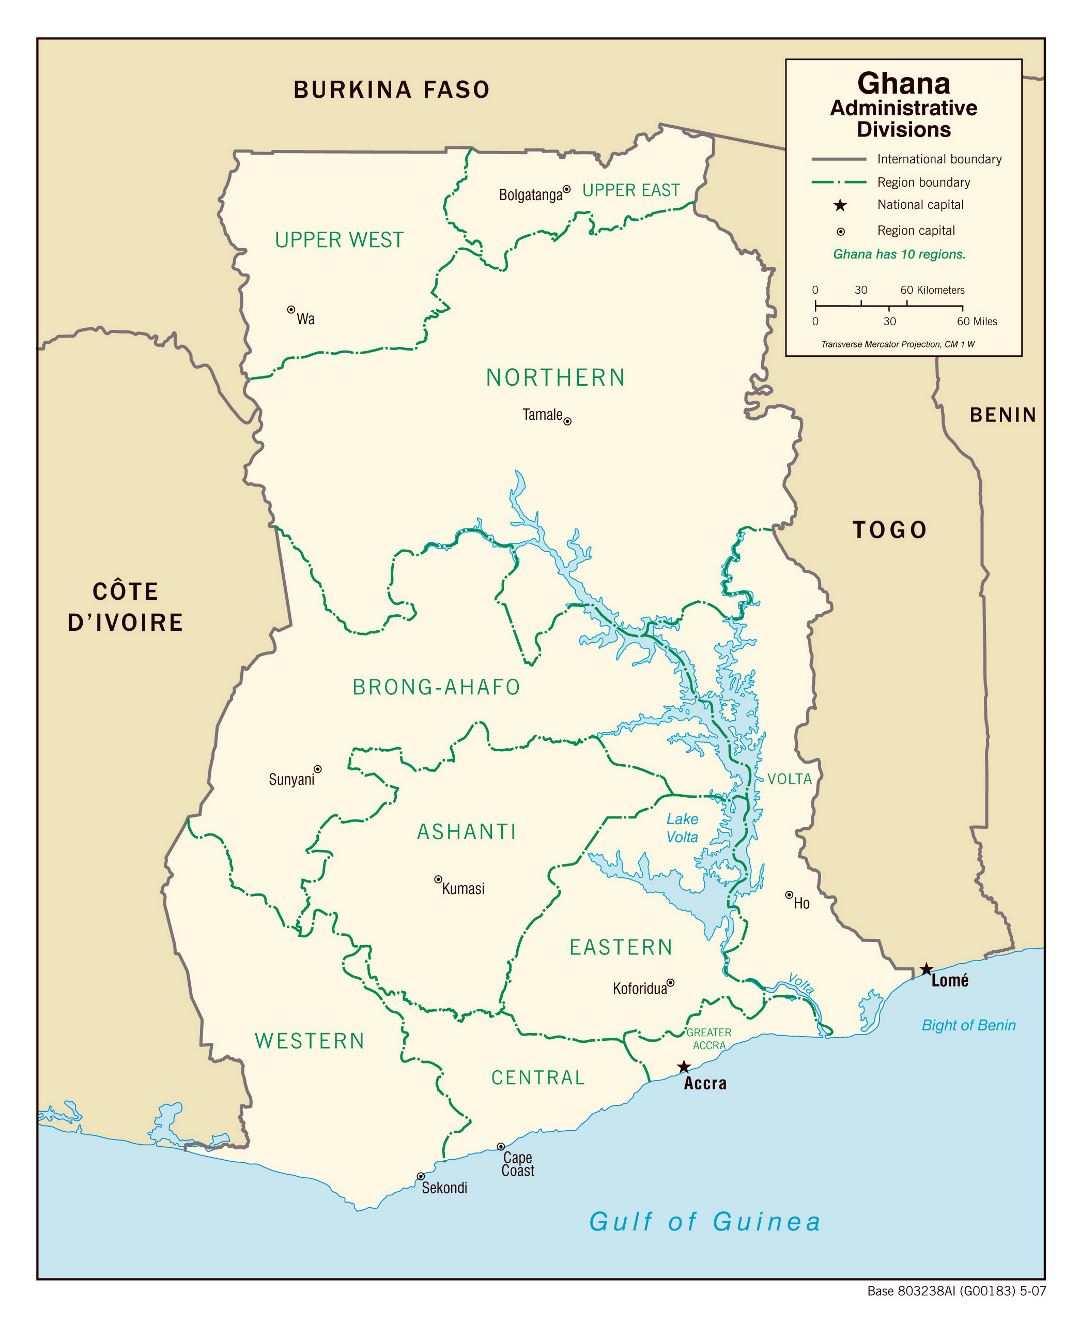 Large administrative divisions map of Ghana - 2007